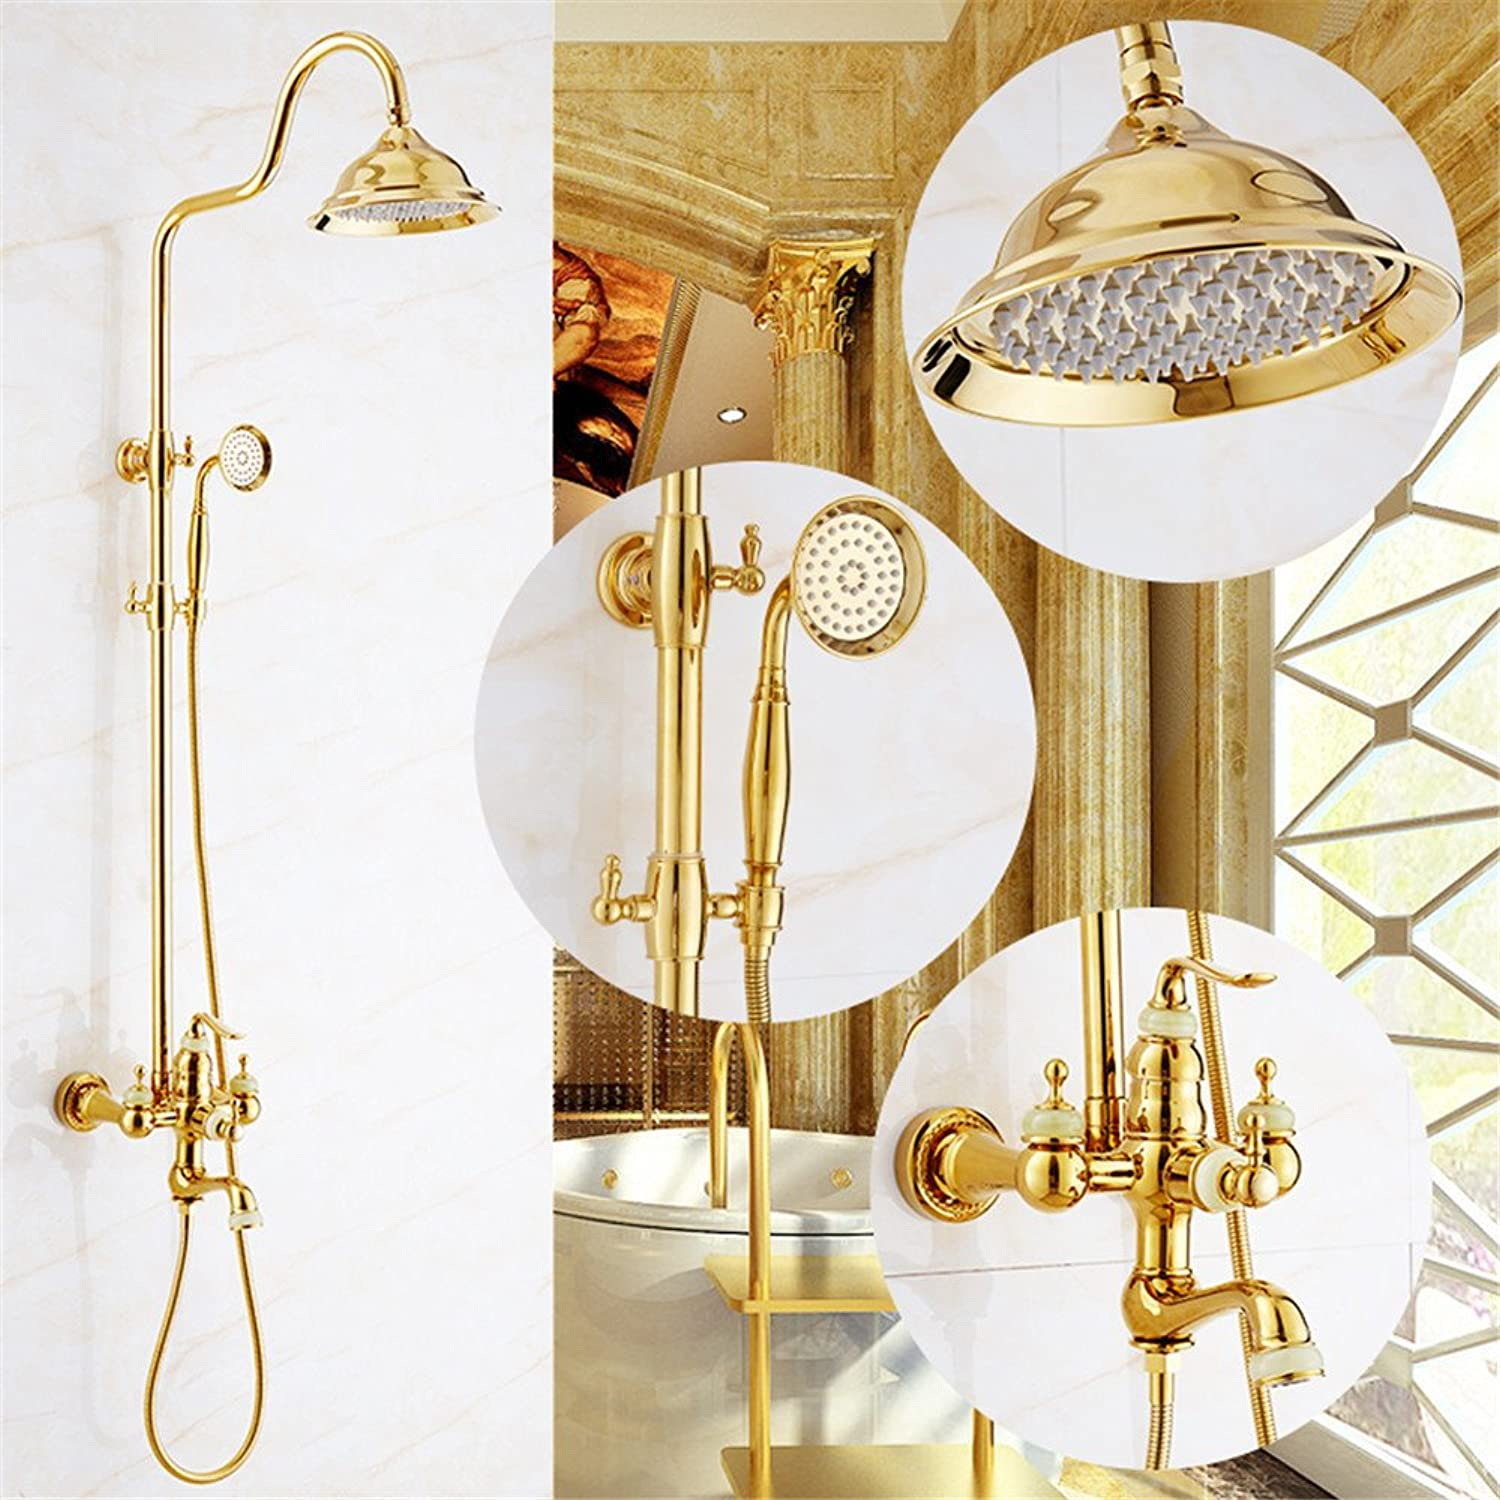 Hlluya Professional Sink Mixer Tap Kitchen Faucet The Jade shower gold retro faucet antique shower set bathroom shower,